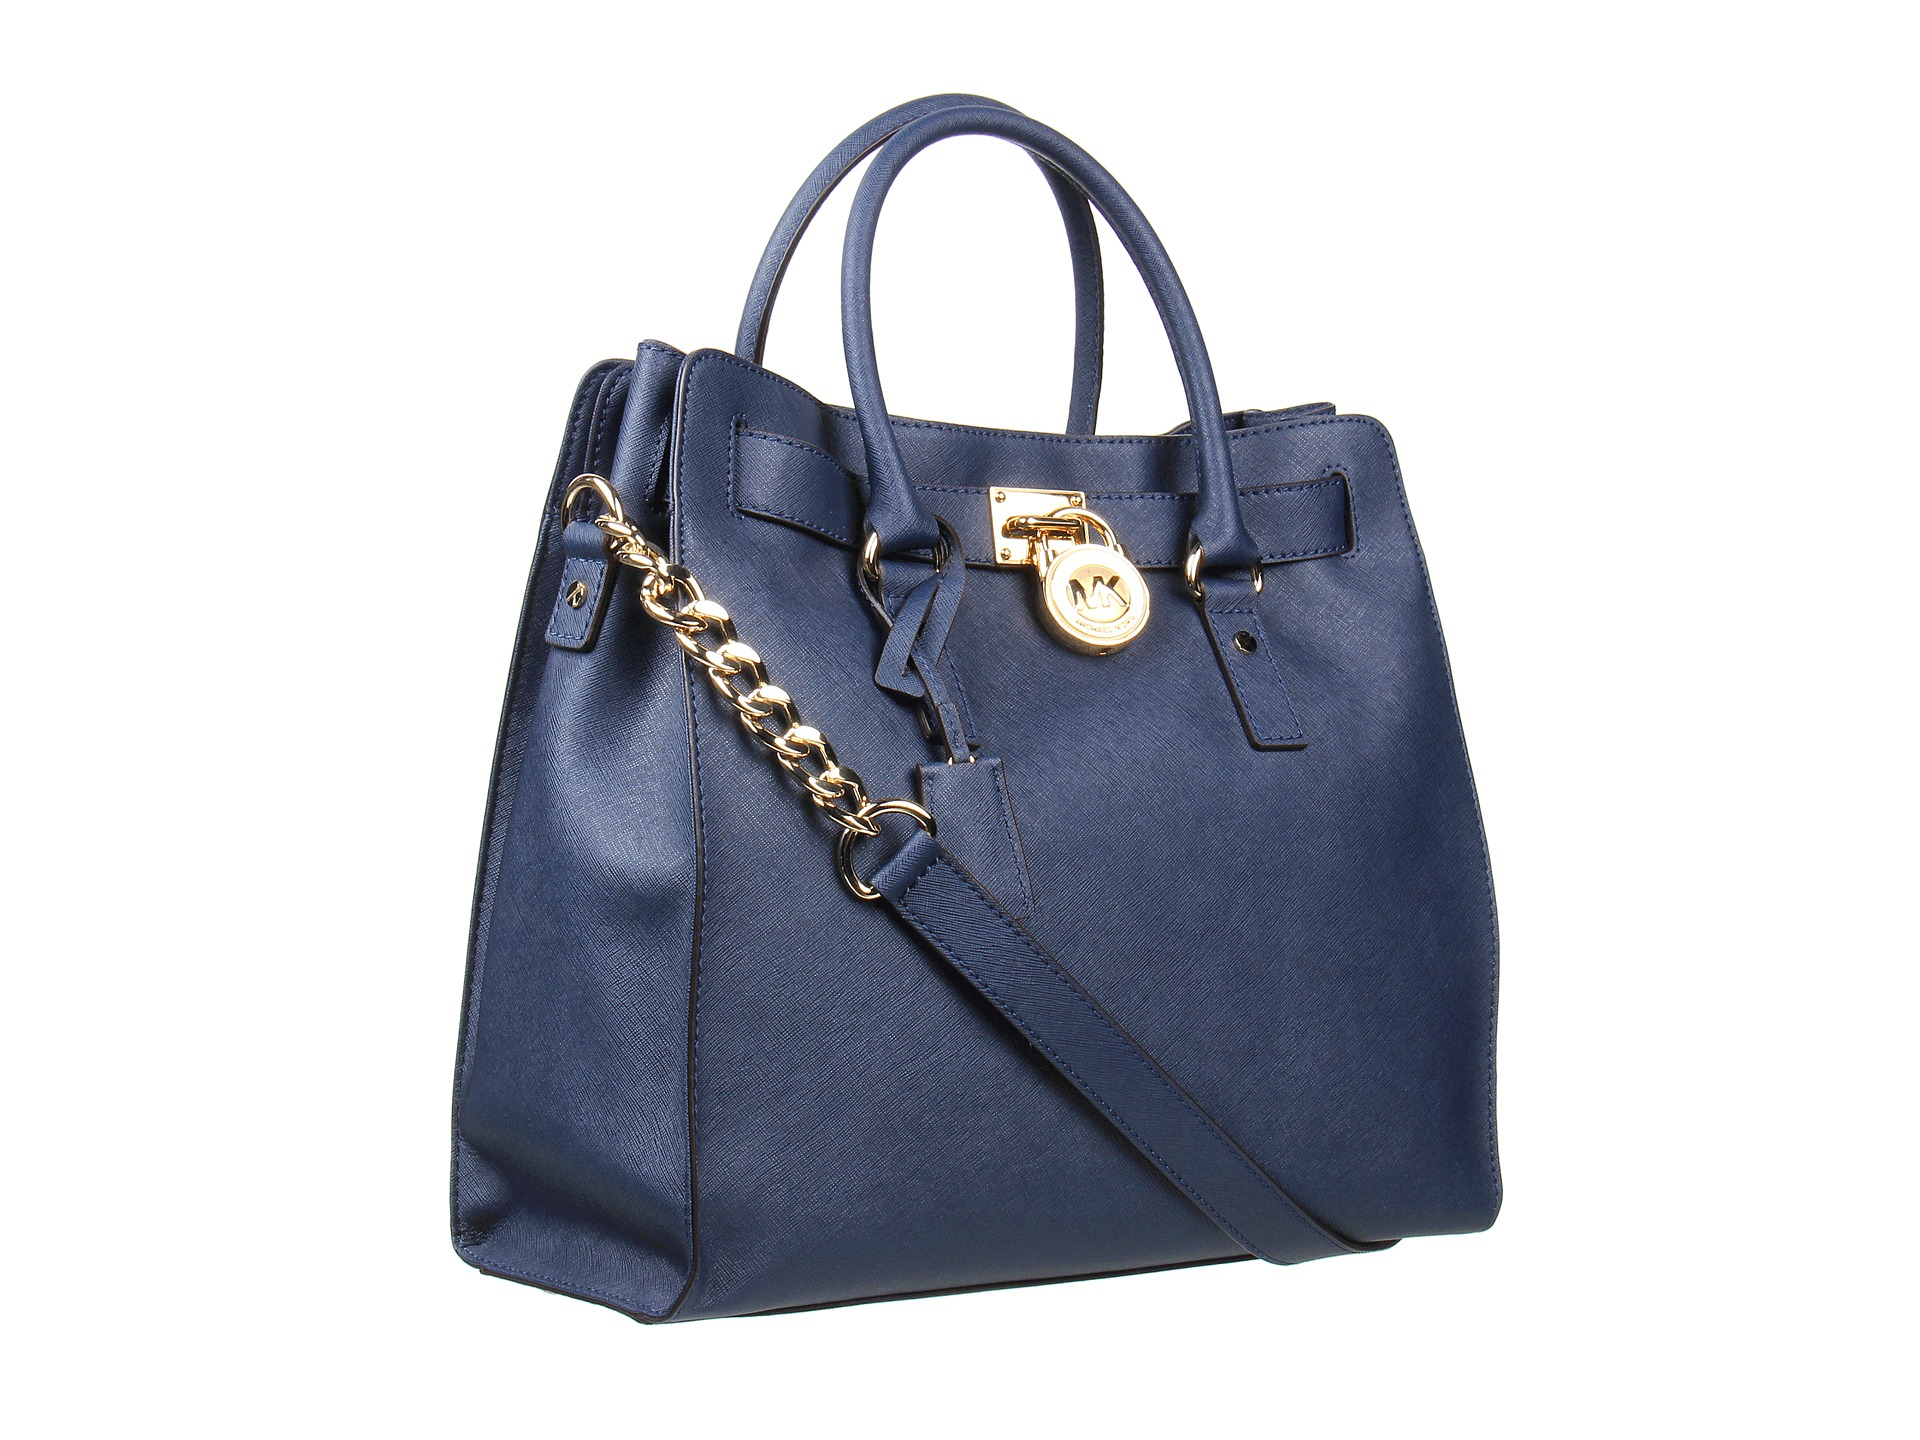 Lyst - MICHAEL Michael Kors Hamilton Large North south Tote in Blue 3ef6a22f739ea